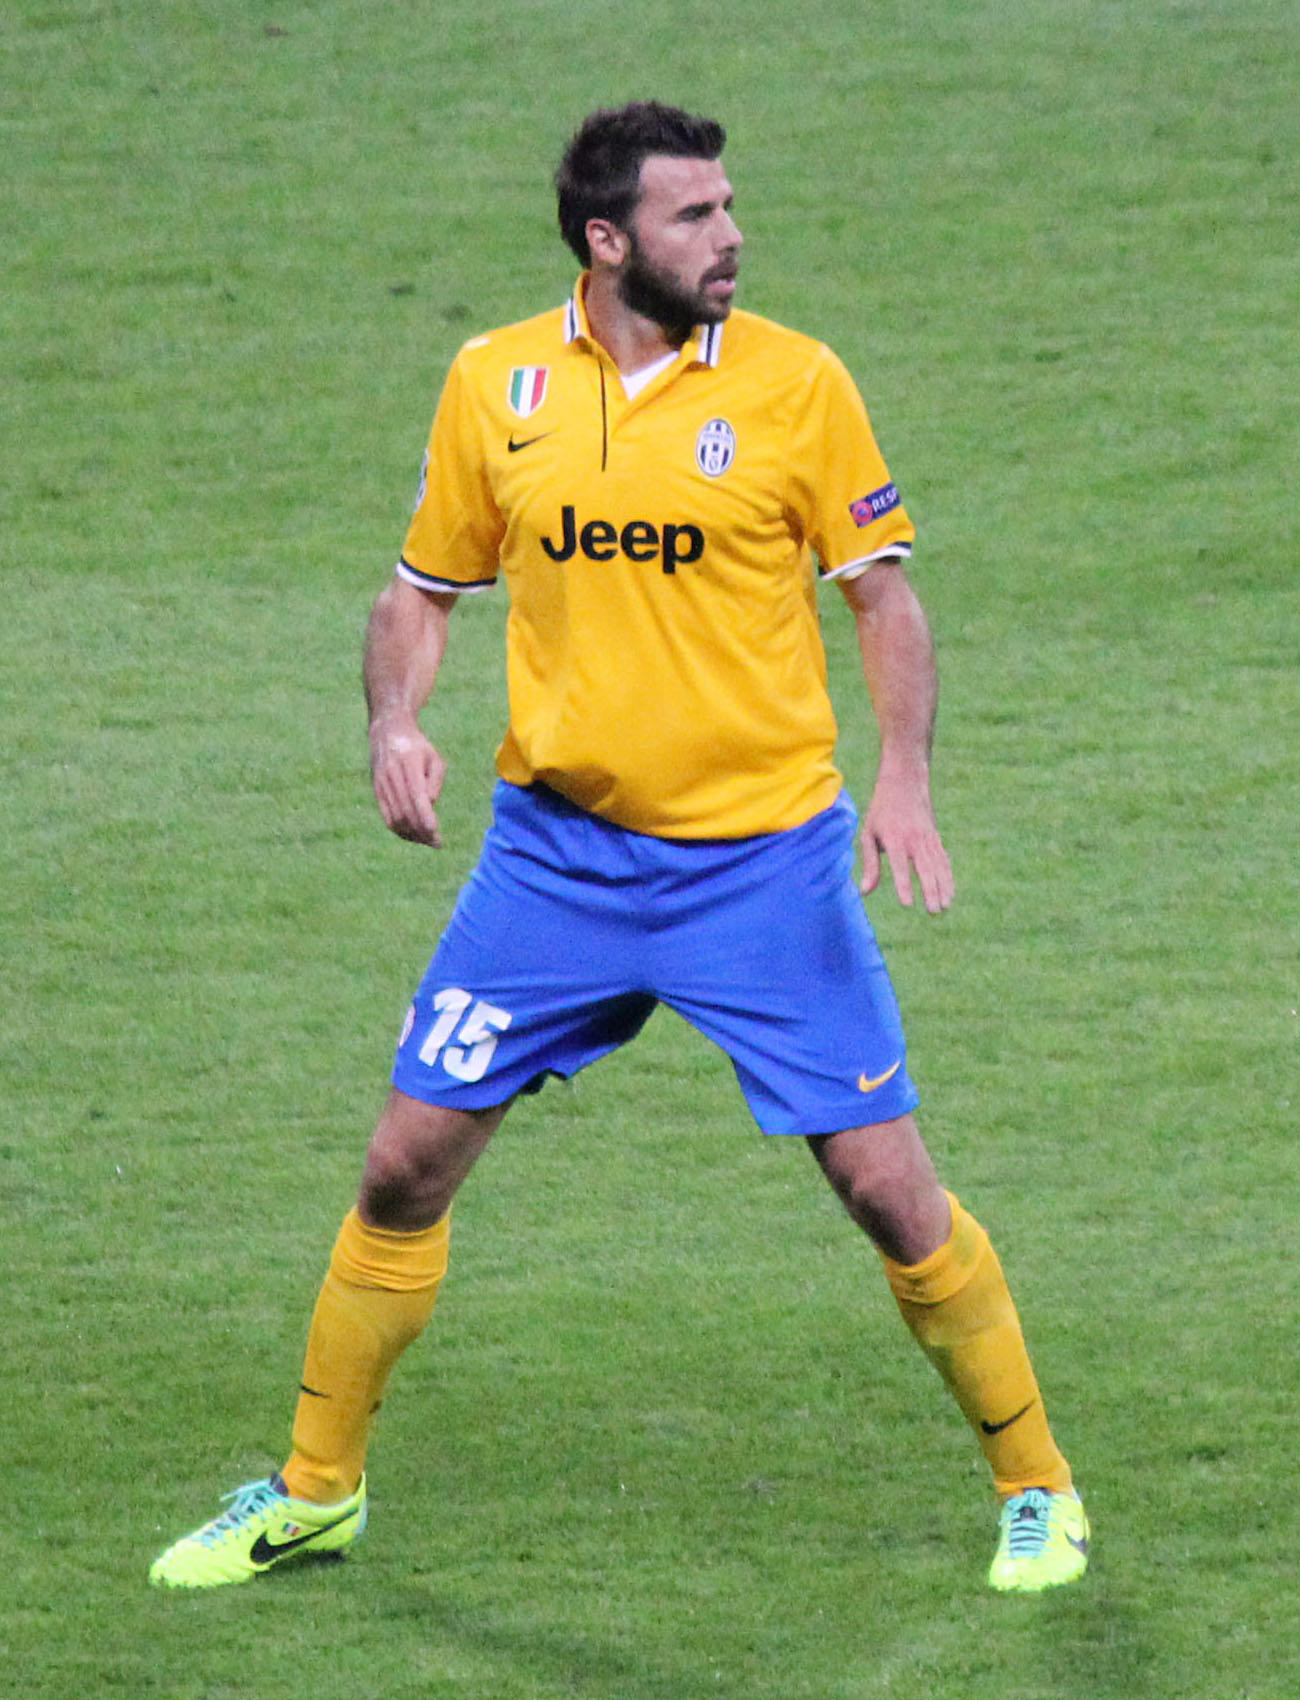 File:Real Madrid vs Juventus, 24 October 2013, Champions League - Andrea Barzagli (2).jpg ...